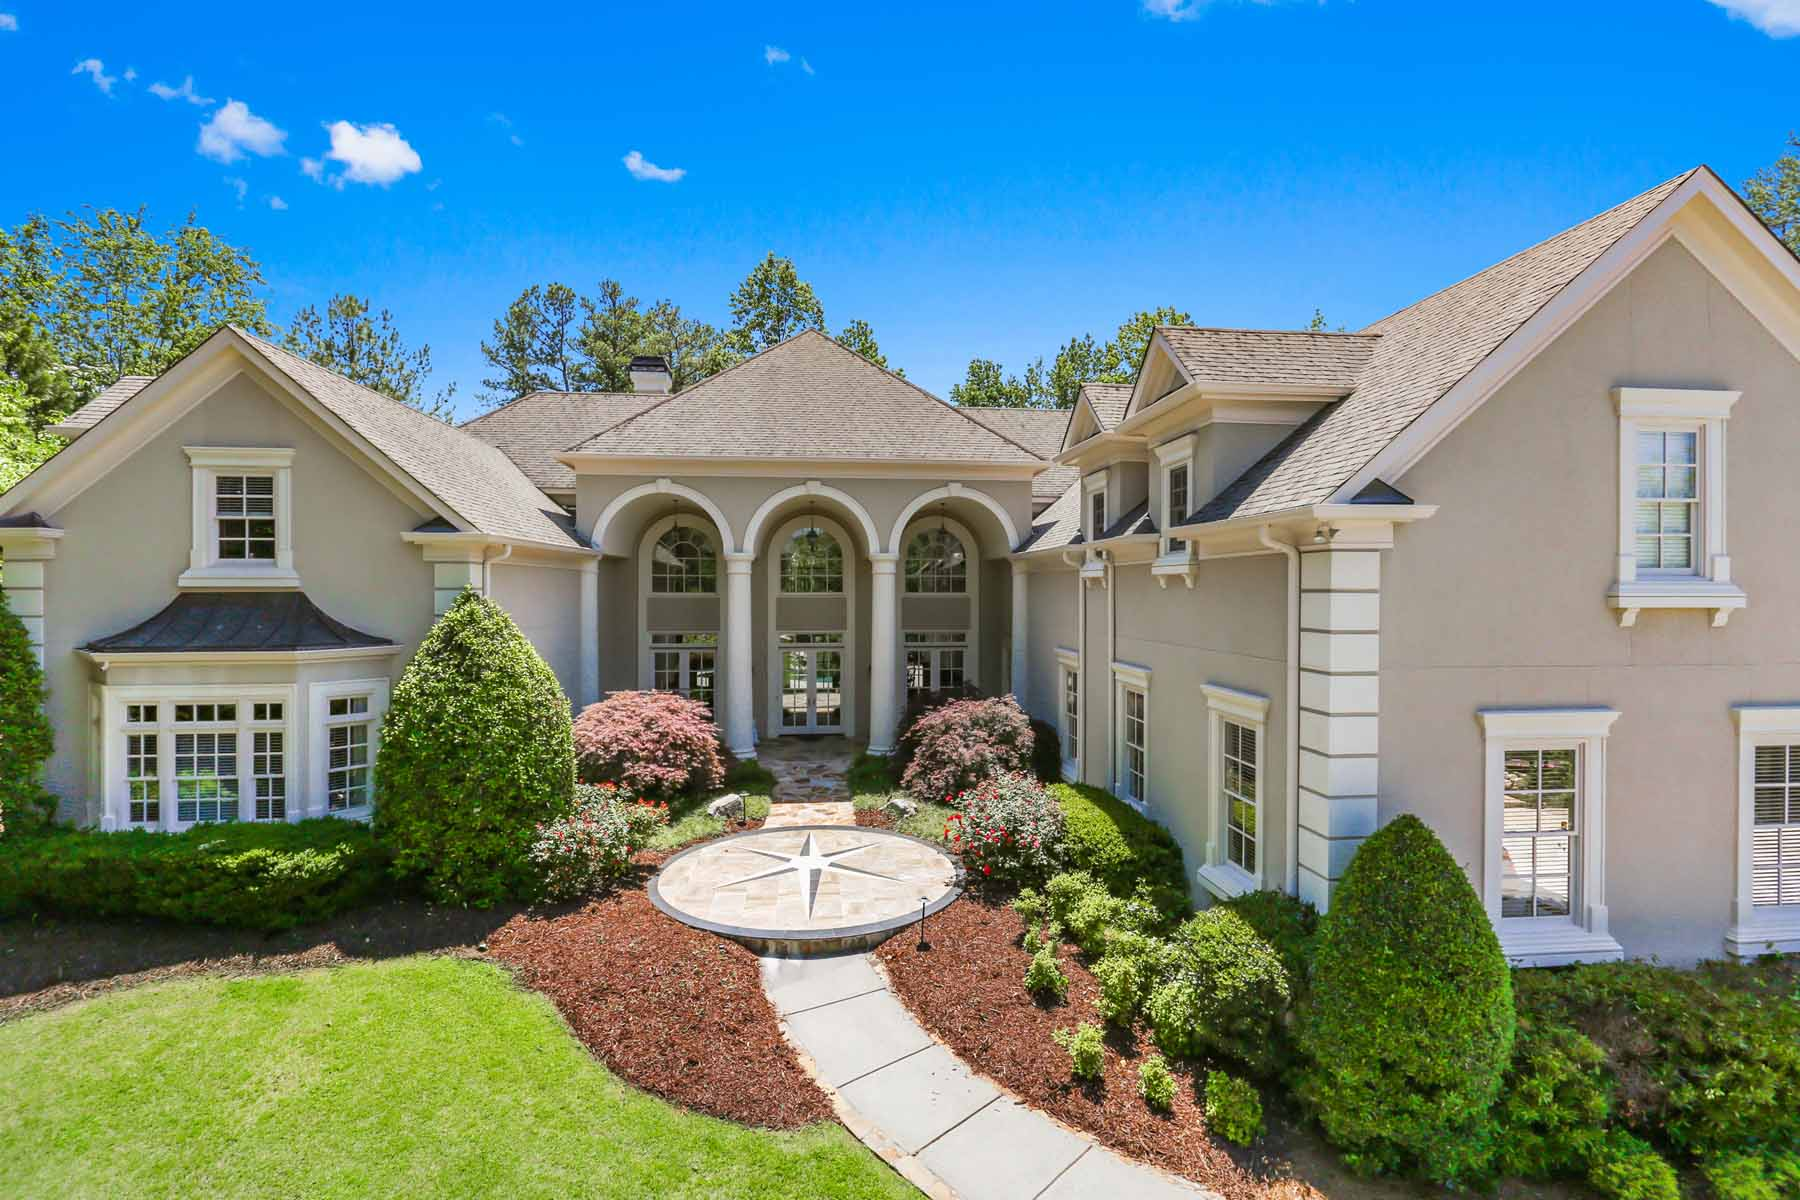 Single Family Home for Rent at Simplified Resort Living in Country Club of the South 2007 Westbourne Way Johns Creek, Georgia 30022 United States